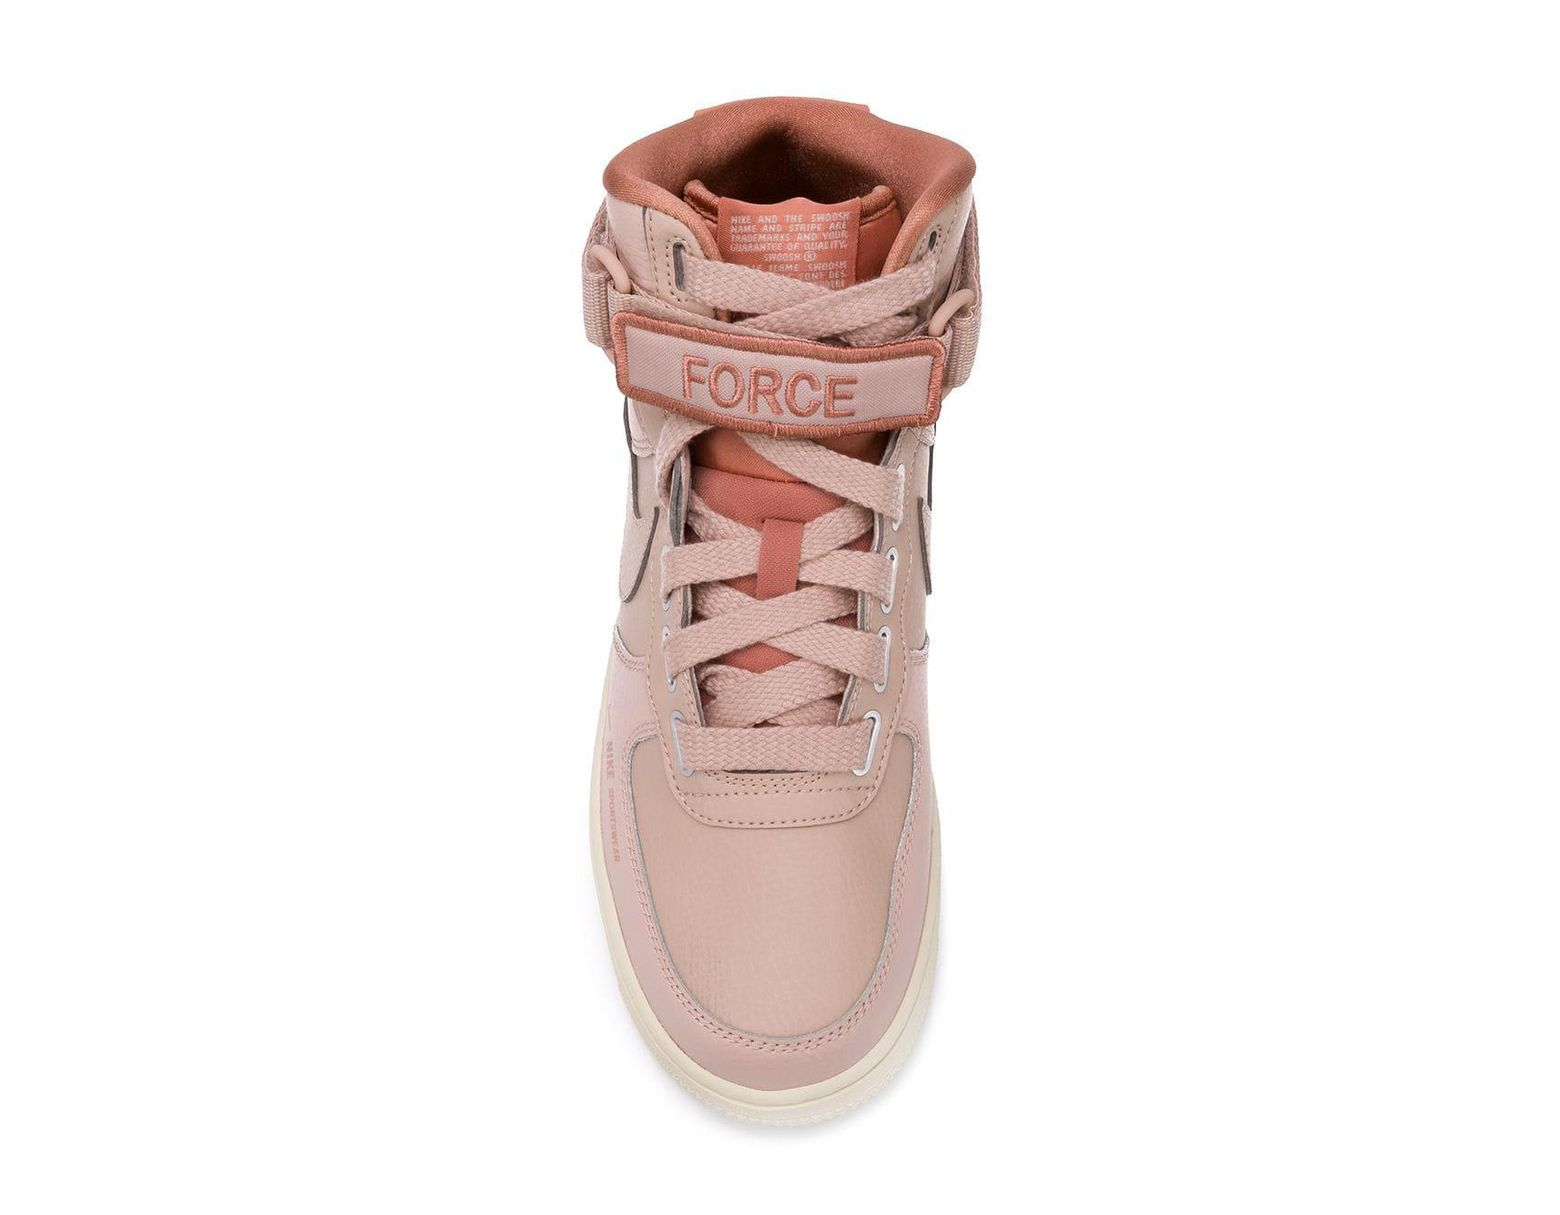 quality design 9d611 9677d Nike Air Force 1 High Utility Sneakers in Pink - Lyst